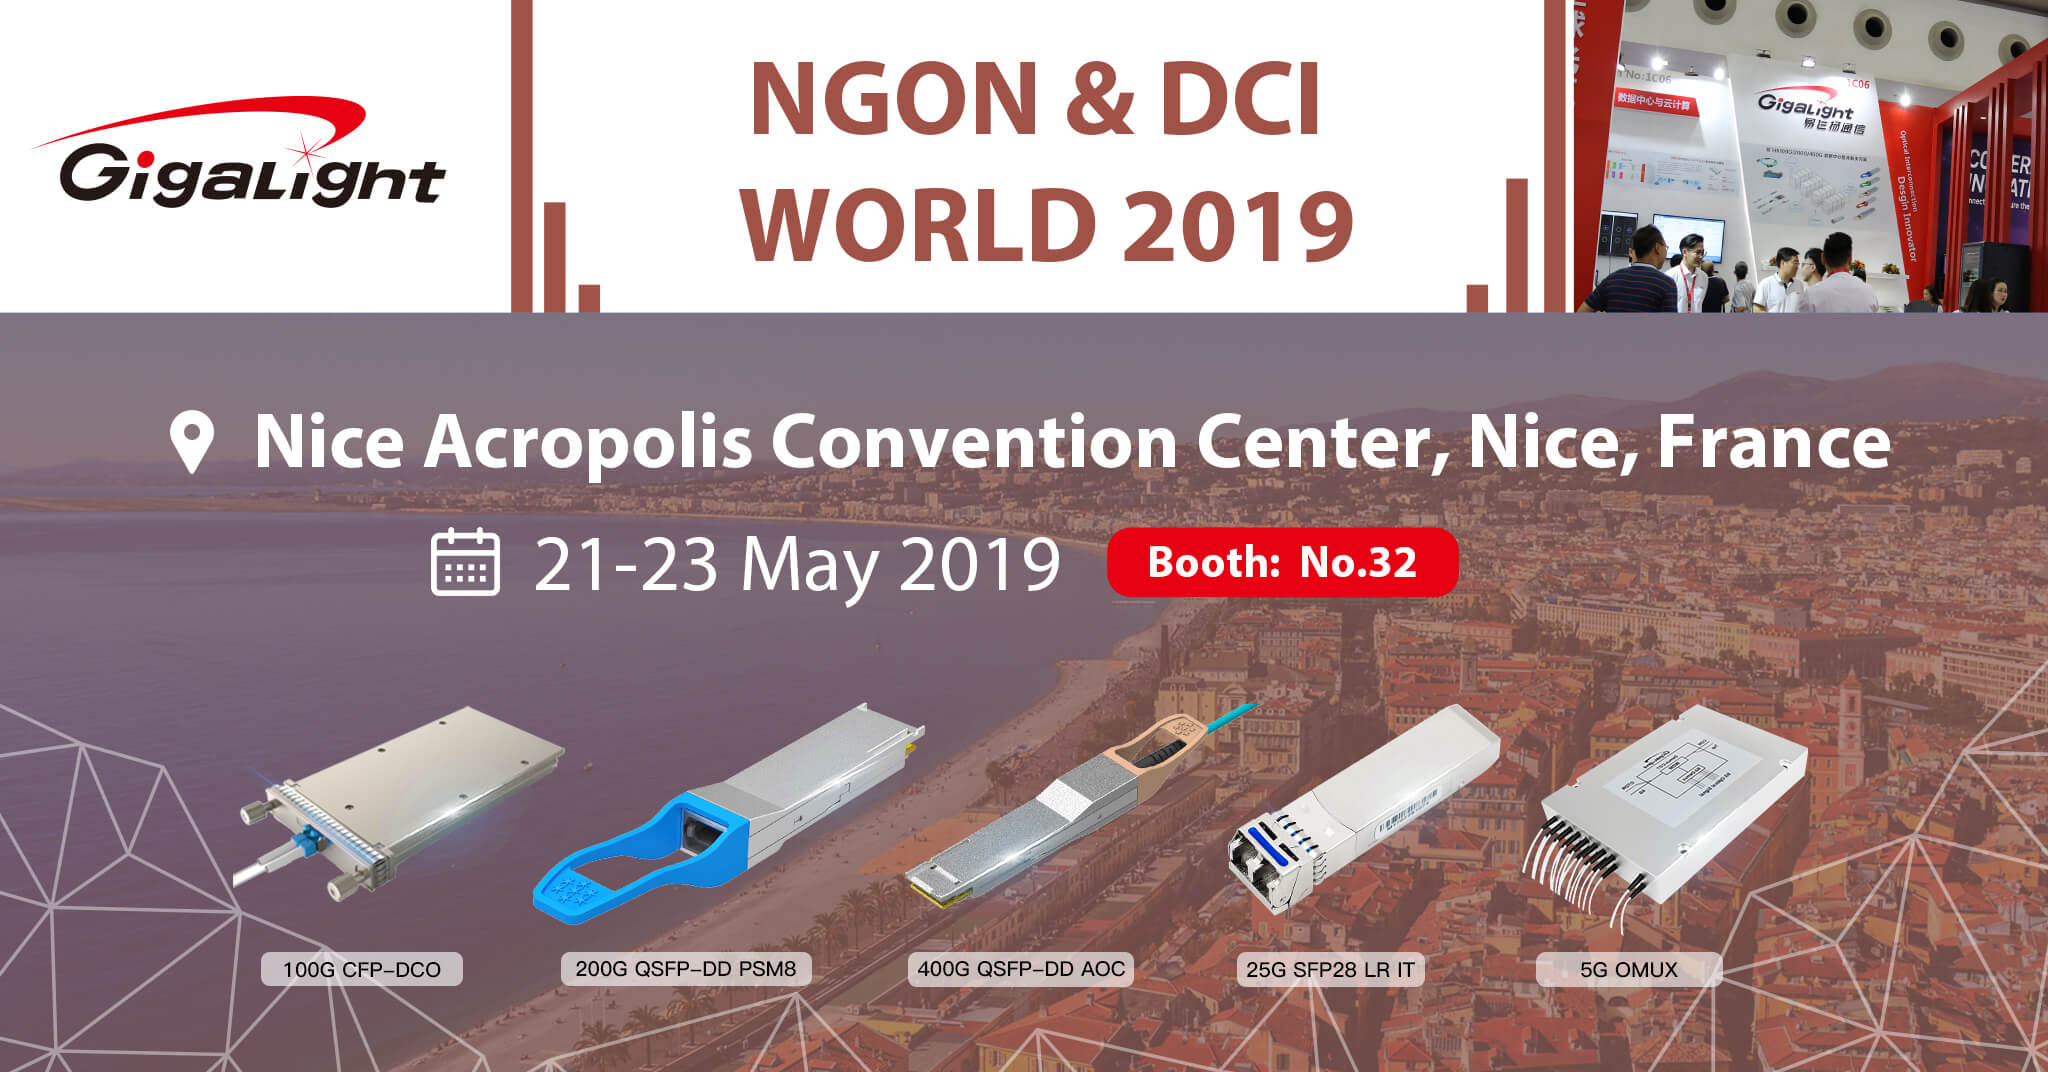 Gigalight to Showcase New Products and Technologies in NGON 2019